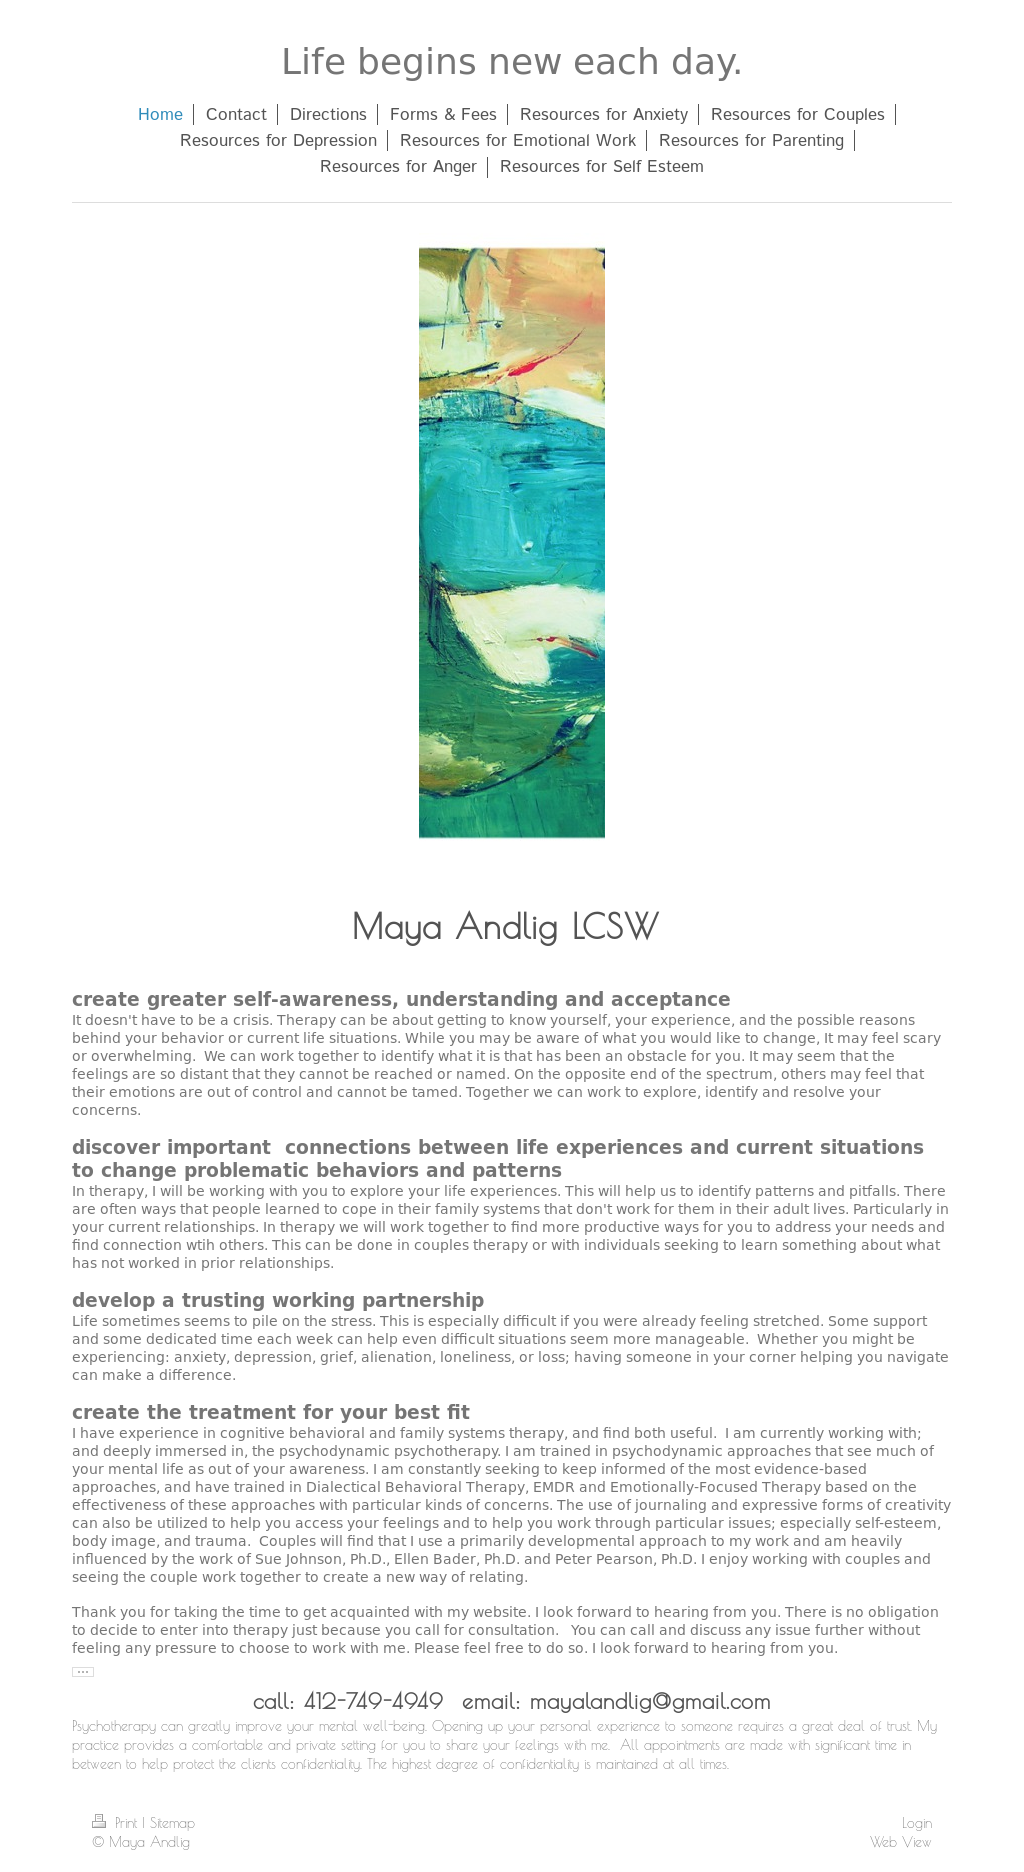 Maya Andlig Competitors, Revenue and Employees - Owler